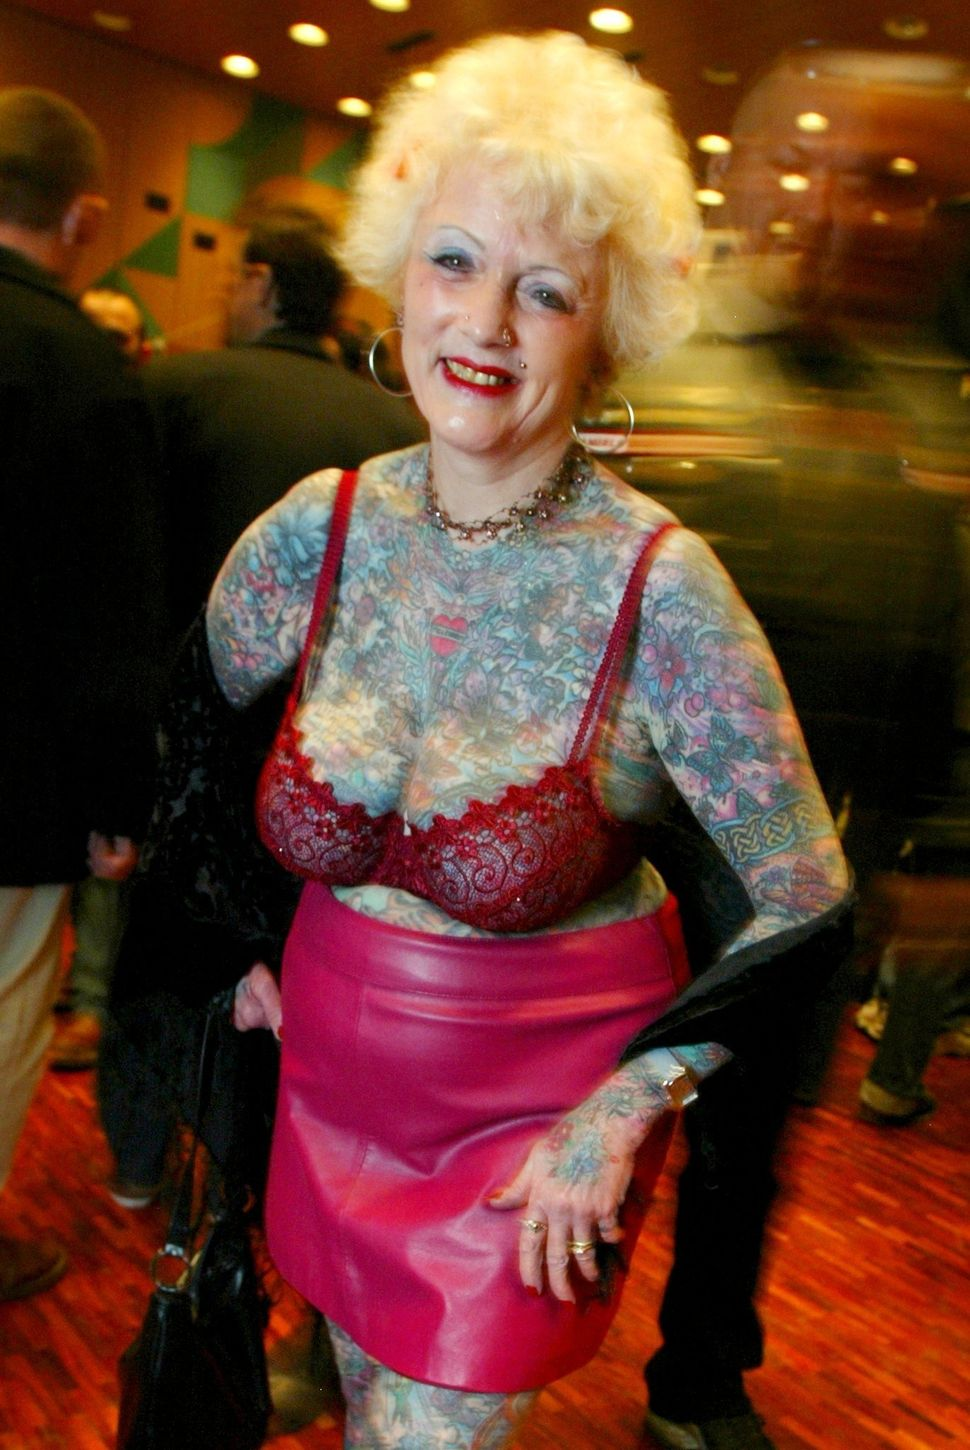 Isobel Varley from Stevenage near London, England, smiles as she poses at the 2003 International Tattoo Convention in Lausann